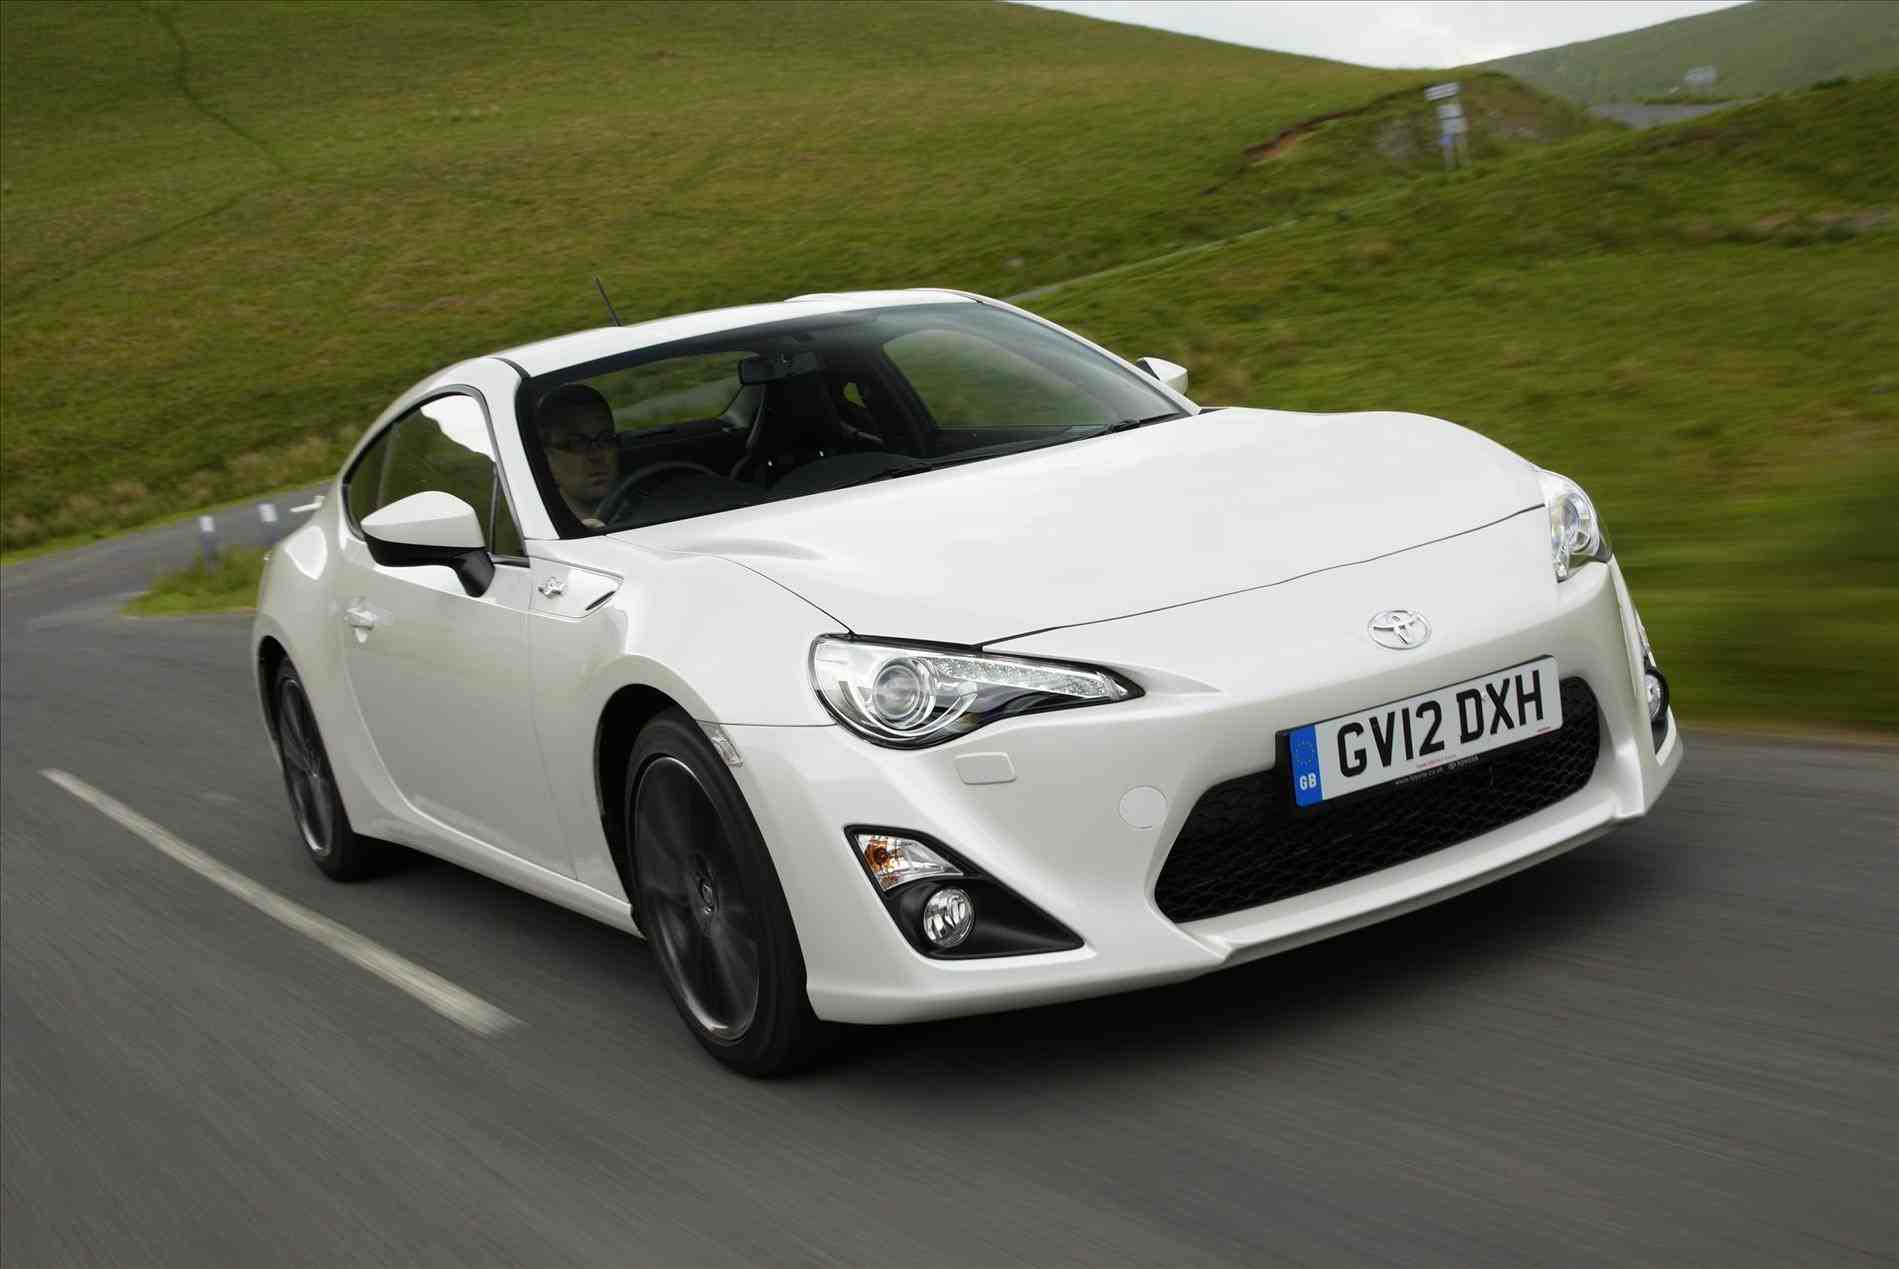 Used Sports Cars for Sale Near Me Lovely Used Sport Cars for Sale Under 5000